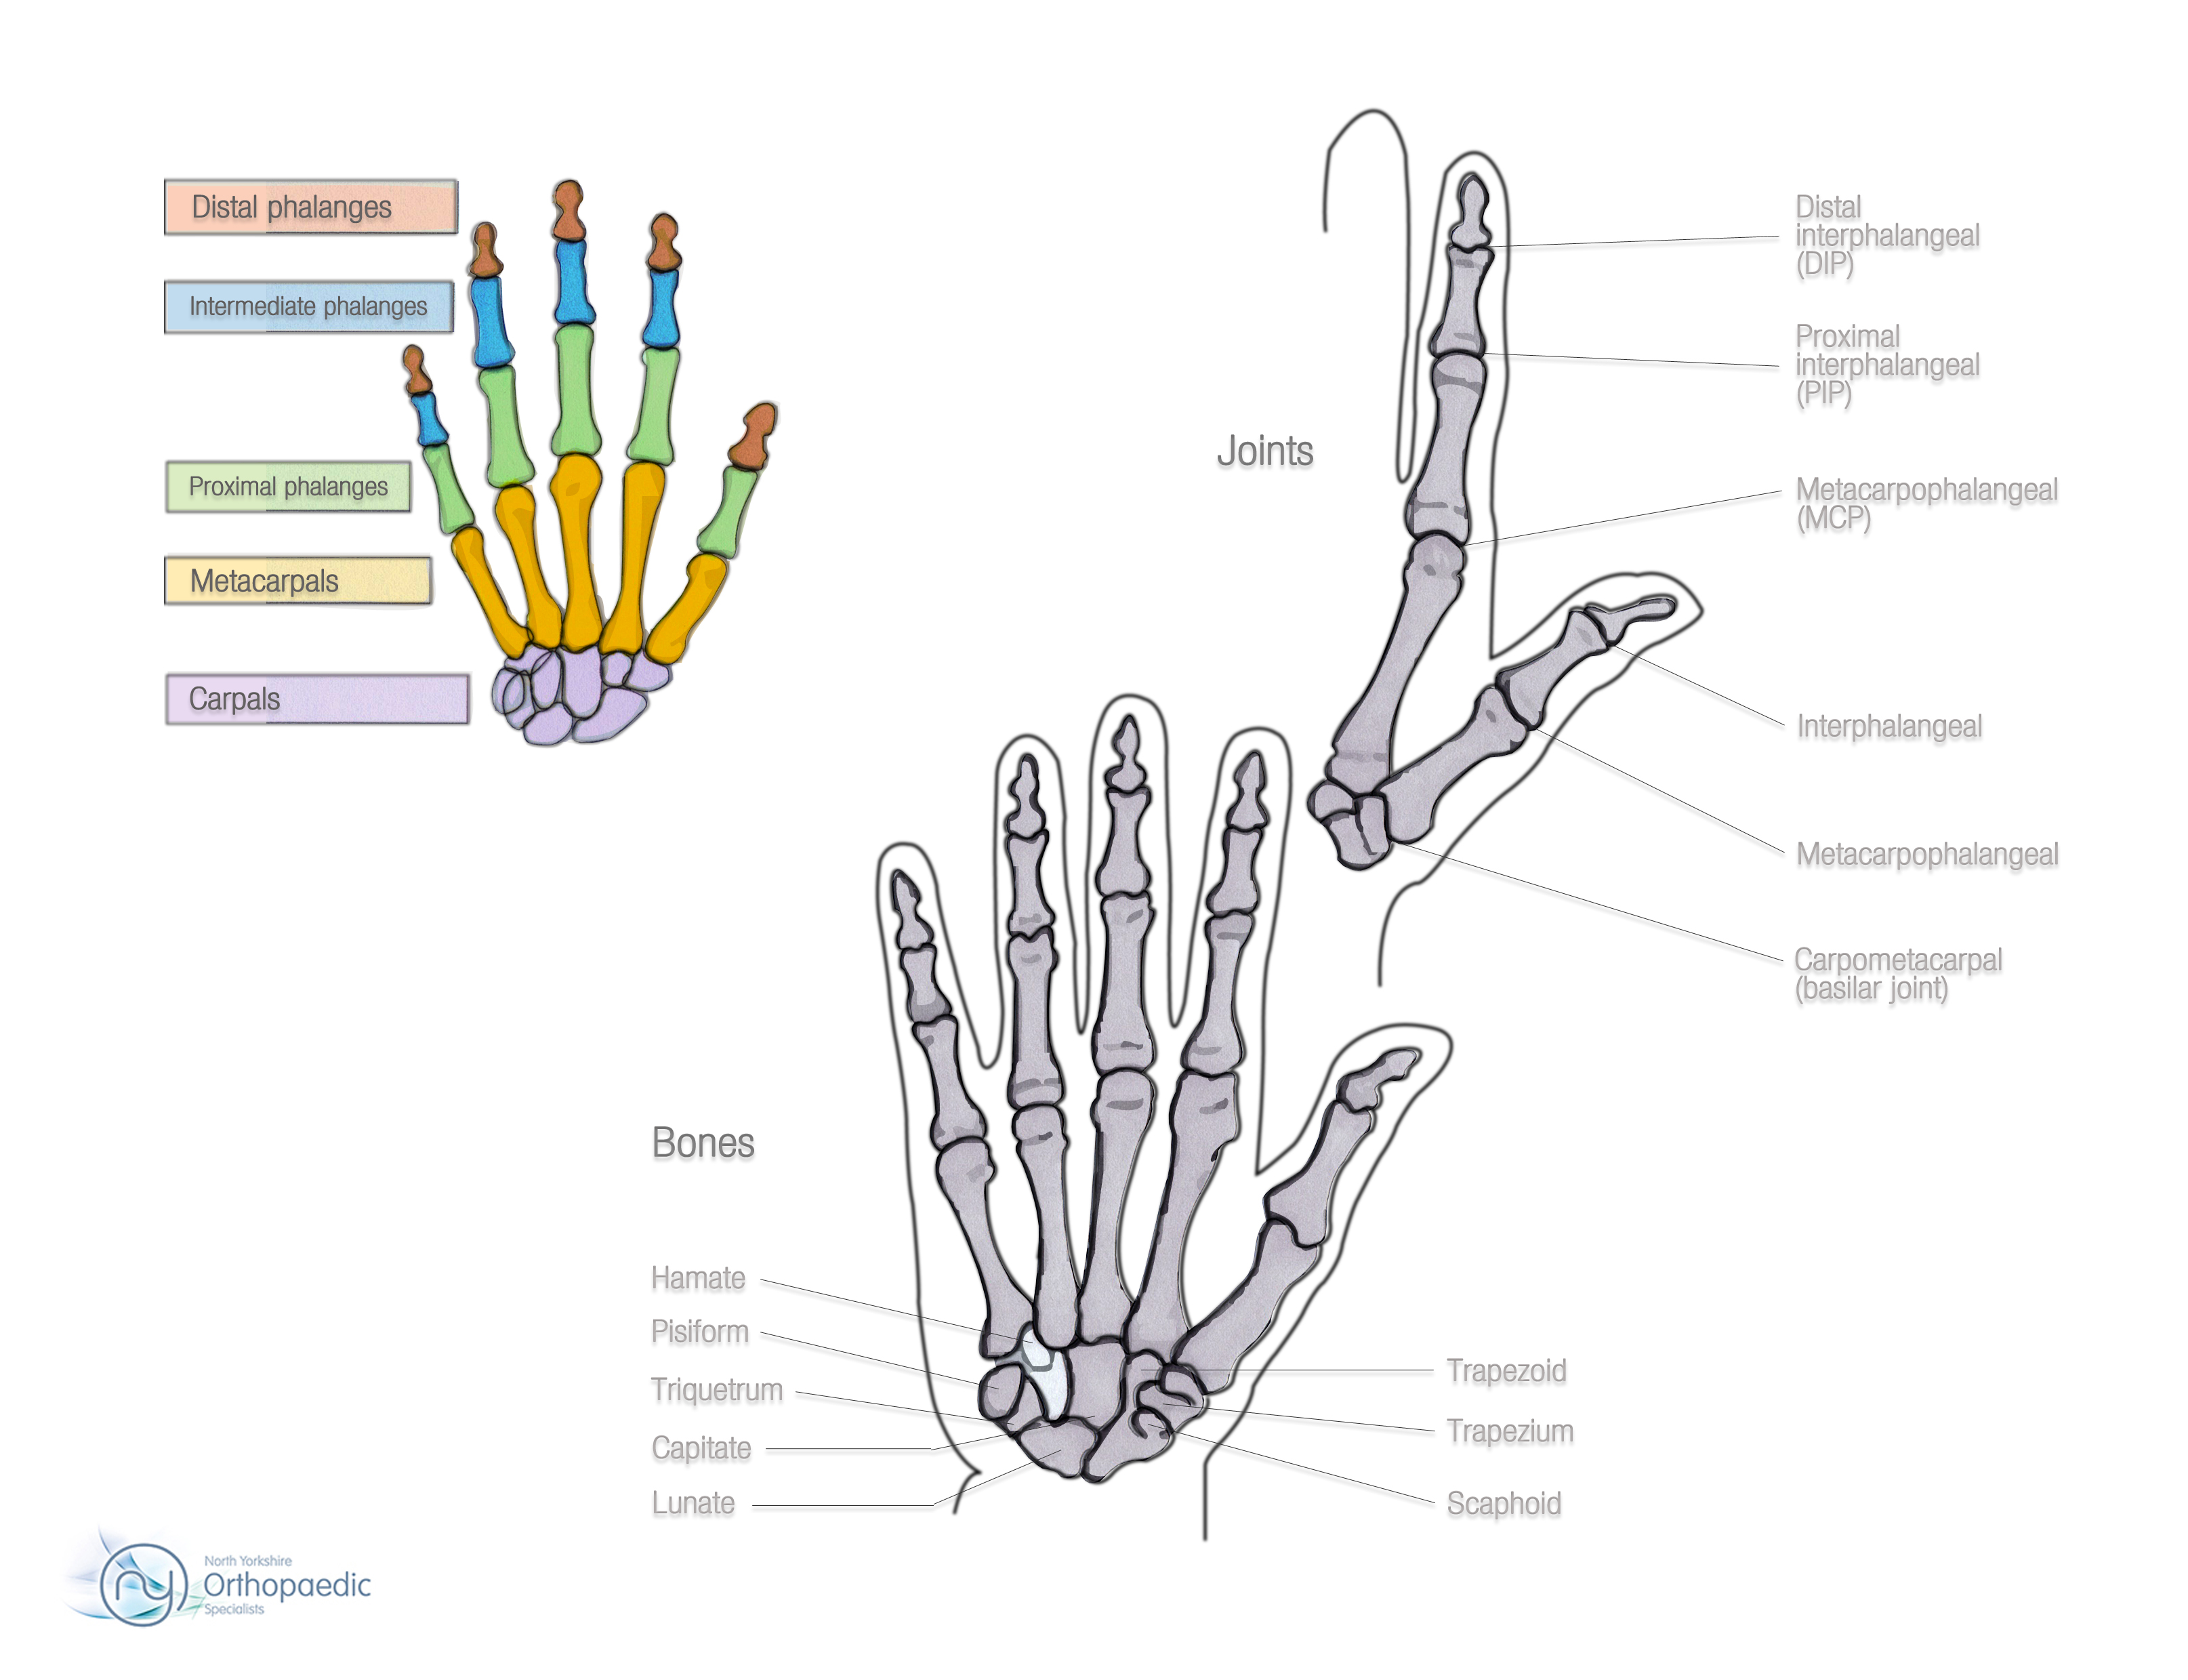 Hand and wrist anatomy | Orthopaedic - Ian Whitaker